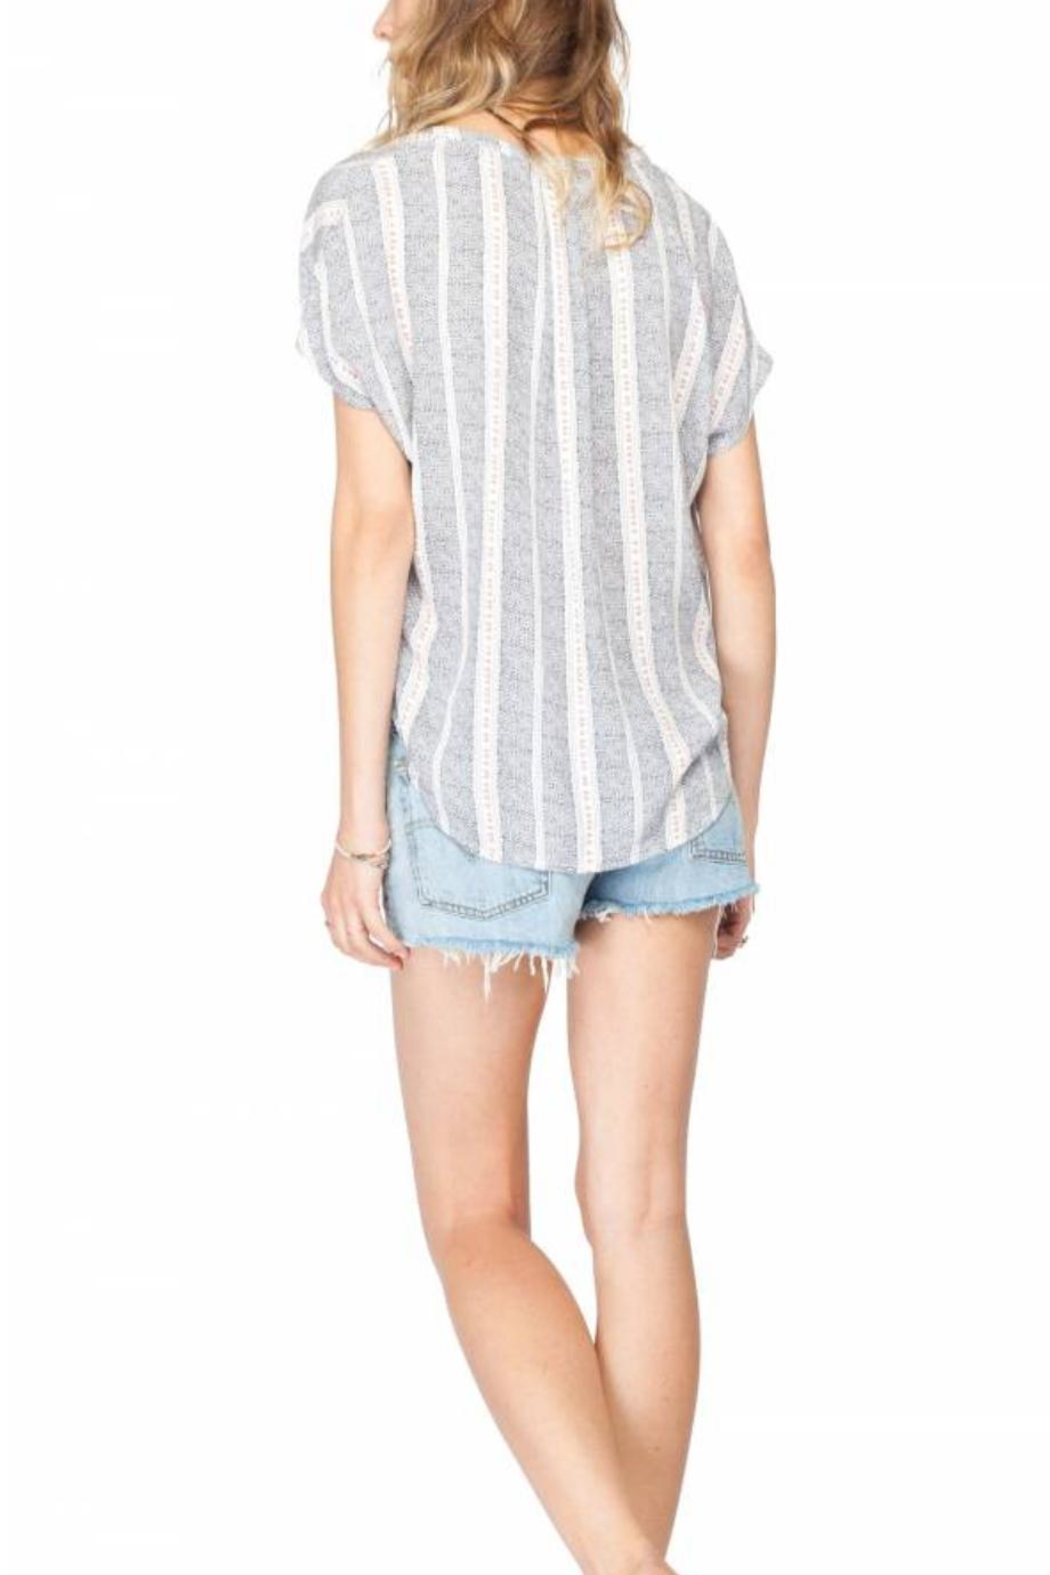 Gentle Fawn Sleeveless Lightweight Woven Top - Side Cropped Image